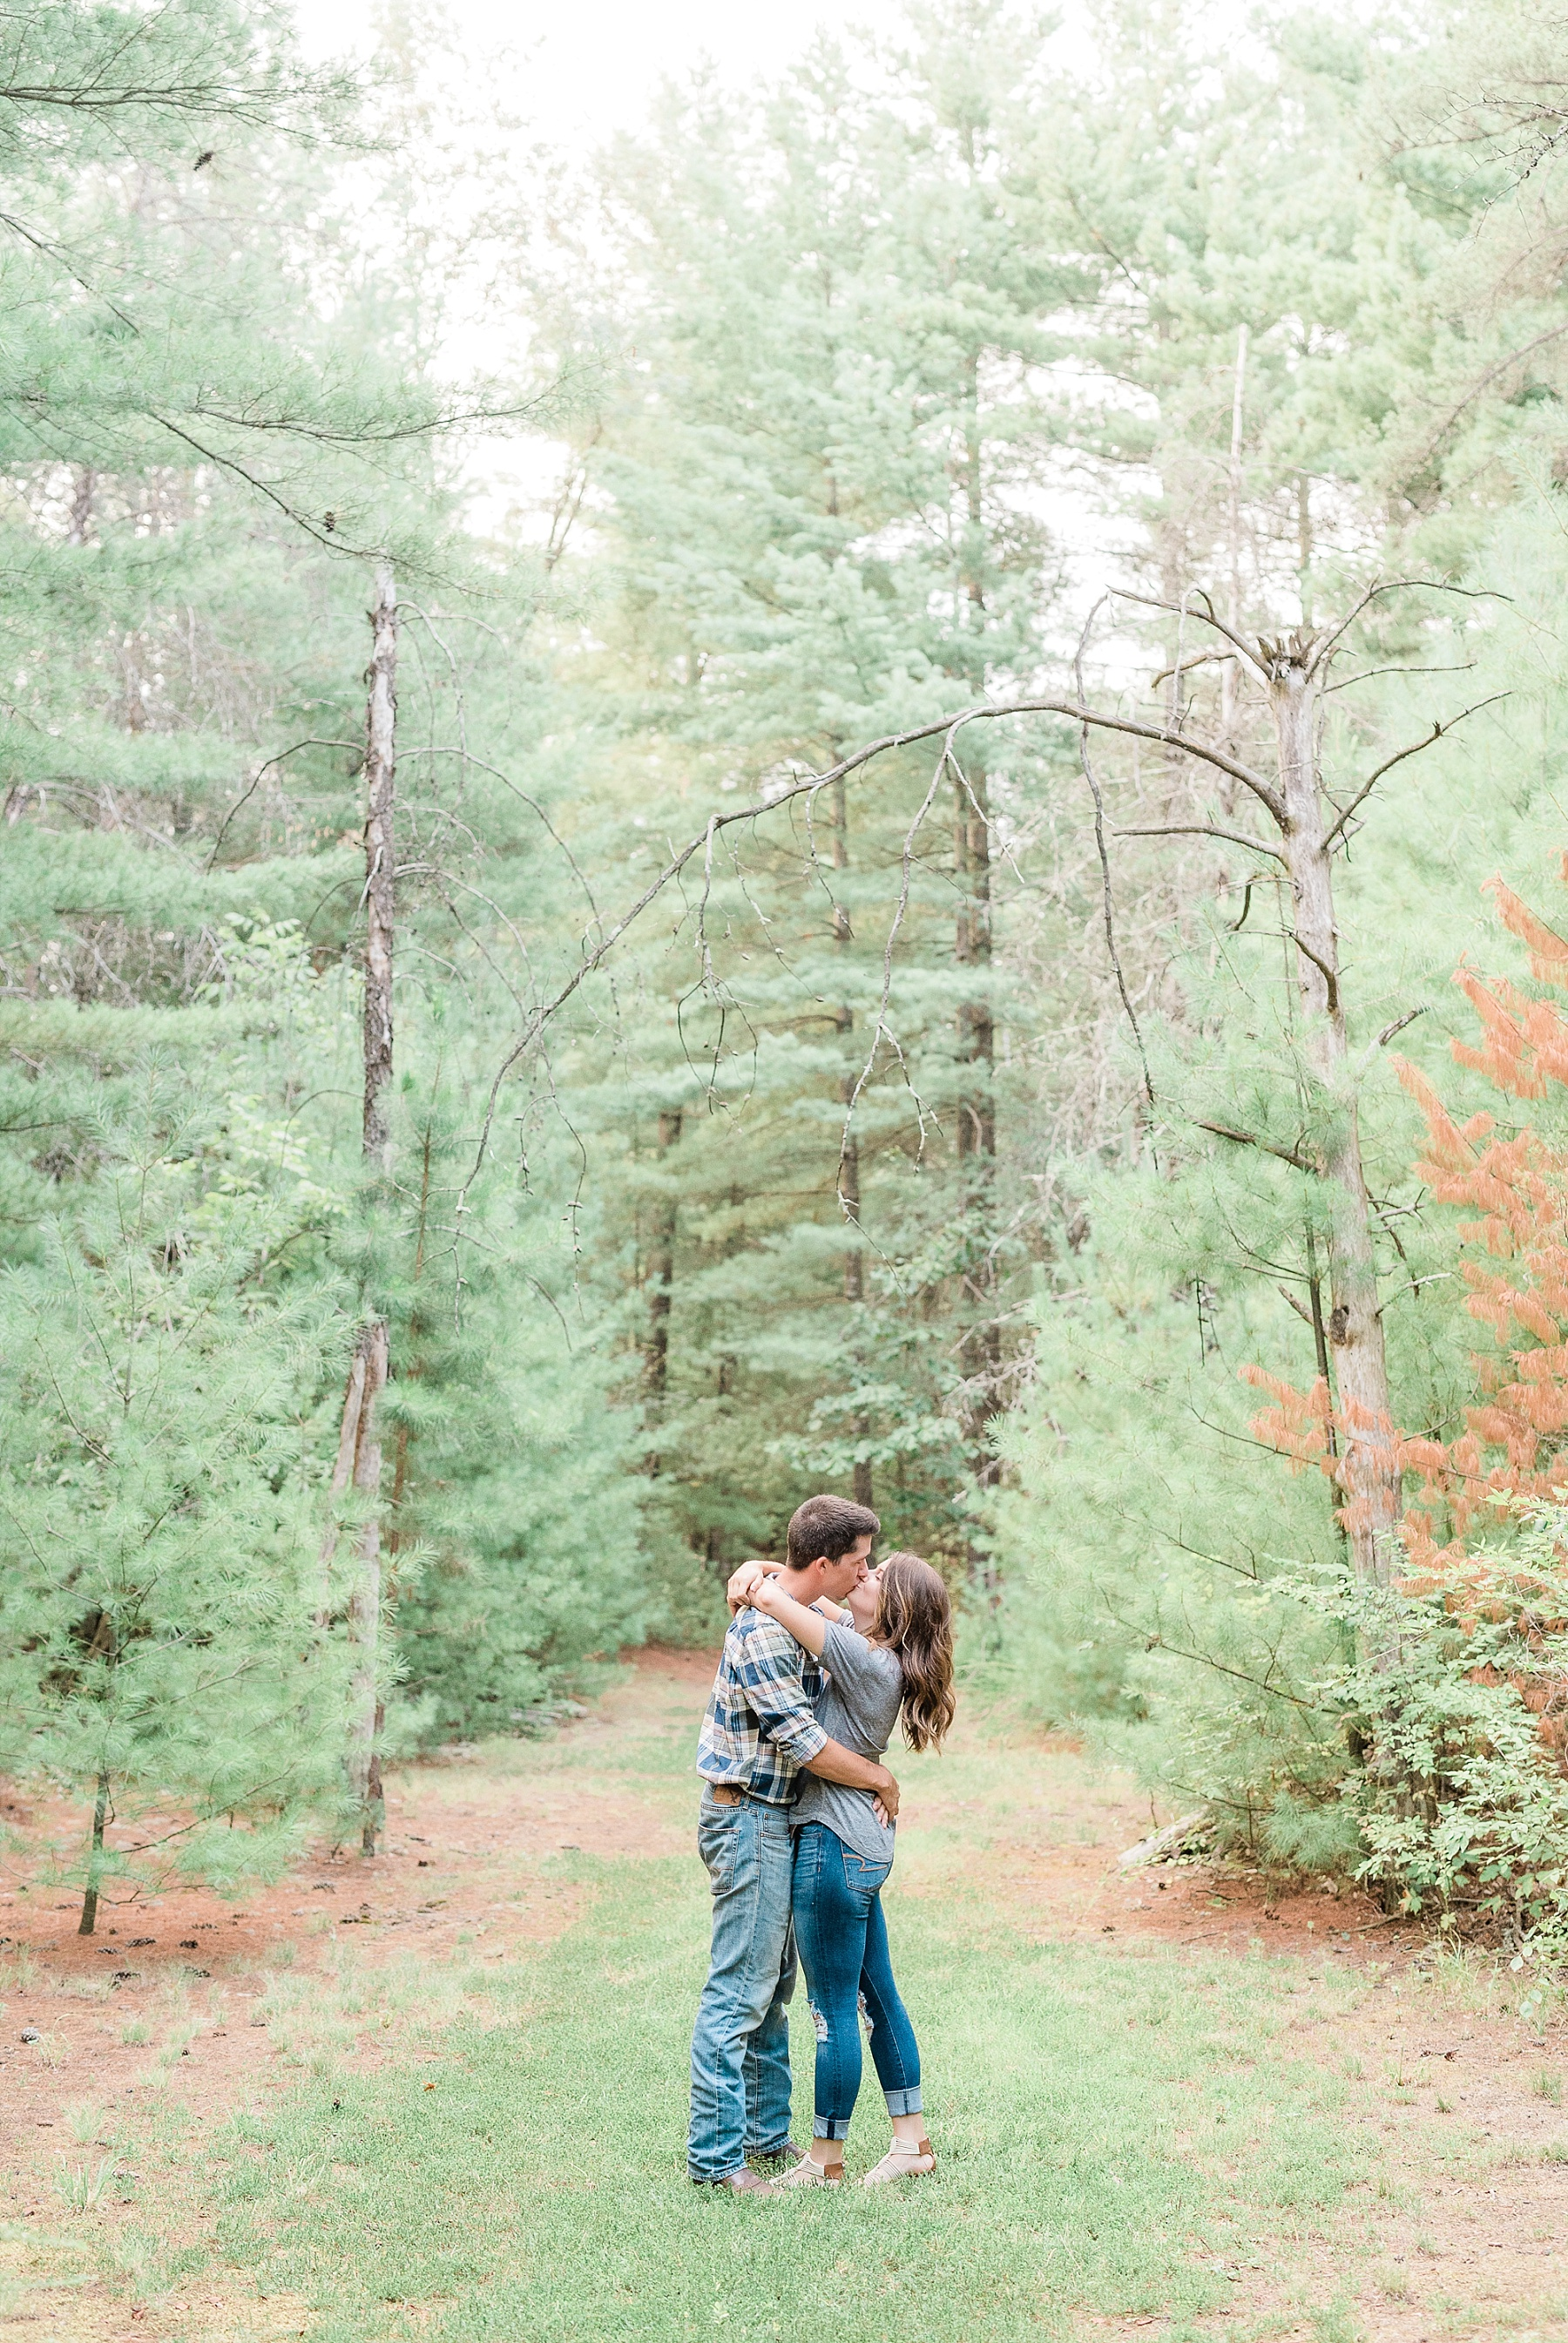 Wanderlust Engagement Session in the Pines with Sunset Canoe Ride in Blue Green Lake in Mid Missouri by Kelsi Kliethermes Photography_0008.jpg